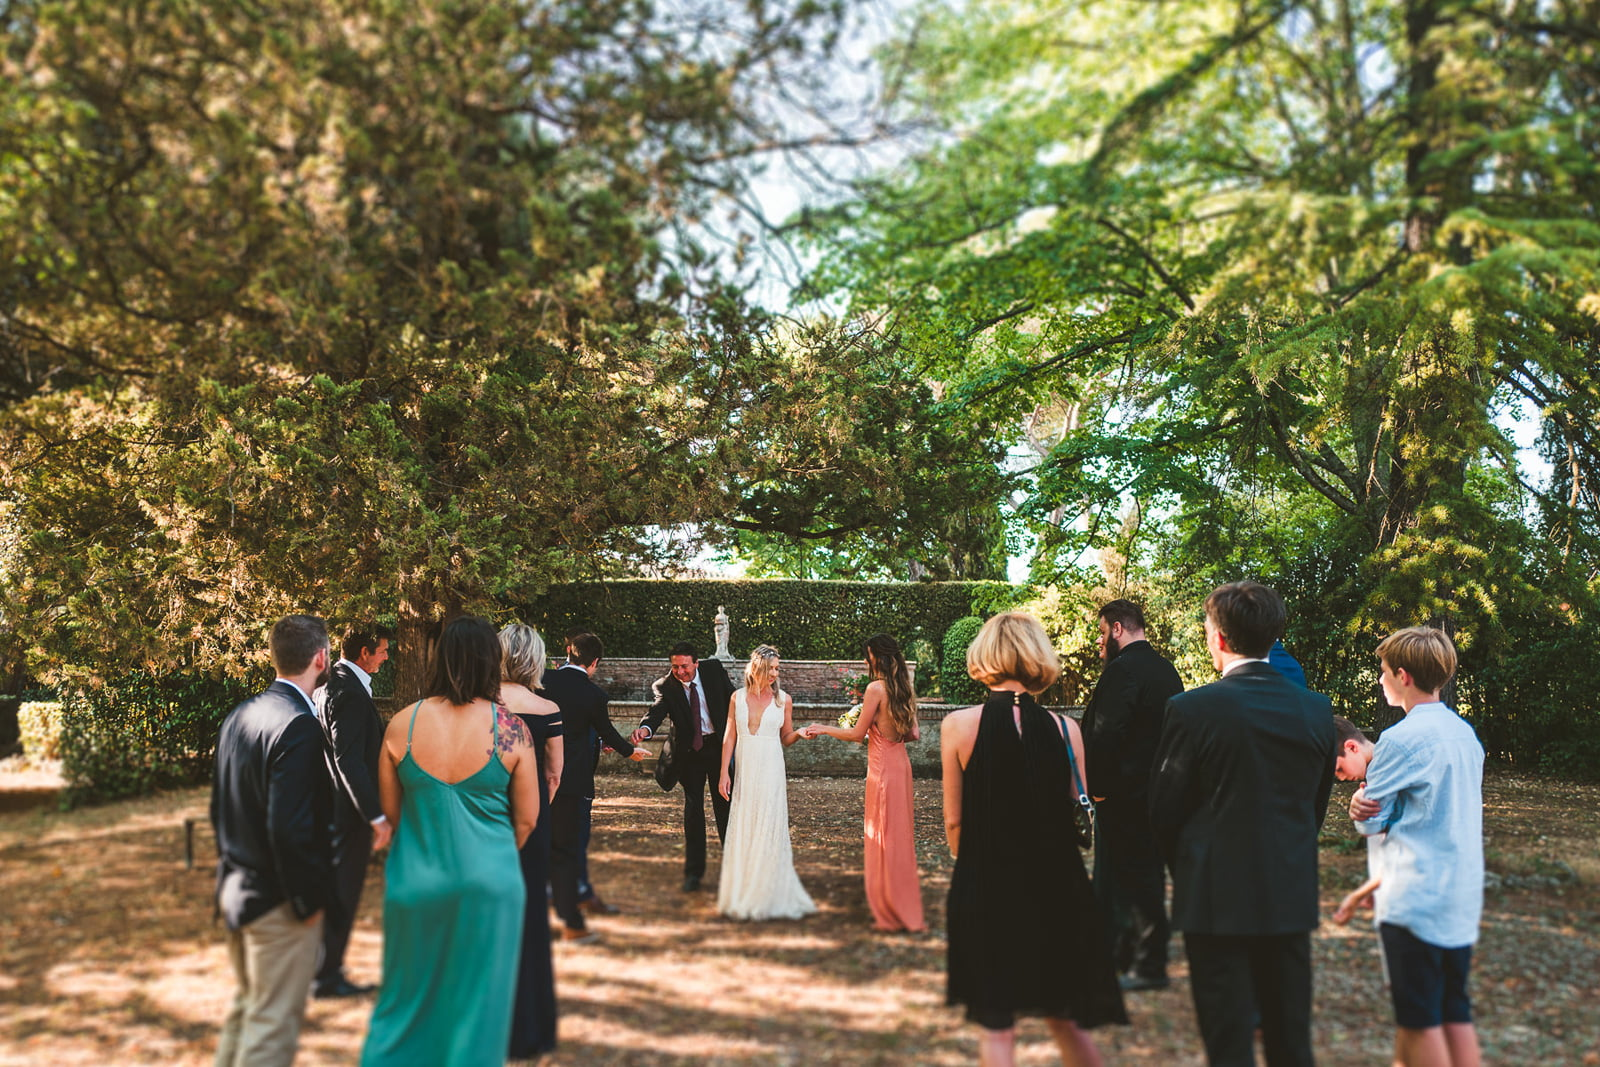 A+L Wedding at Montechiaro, Siena by Federico Pannacci 53